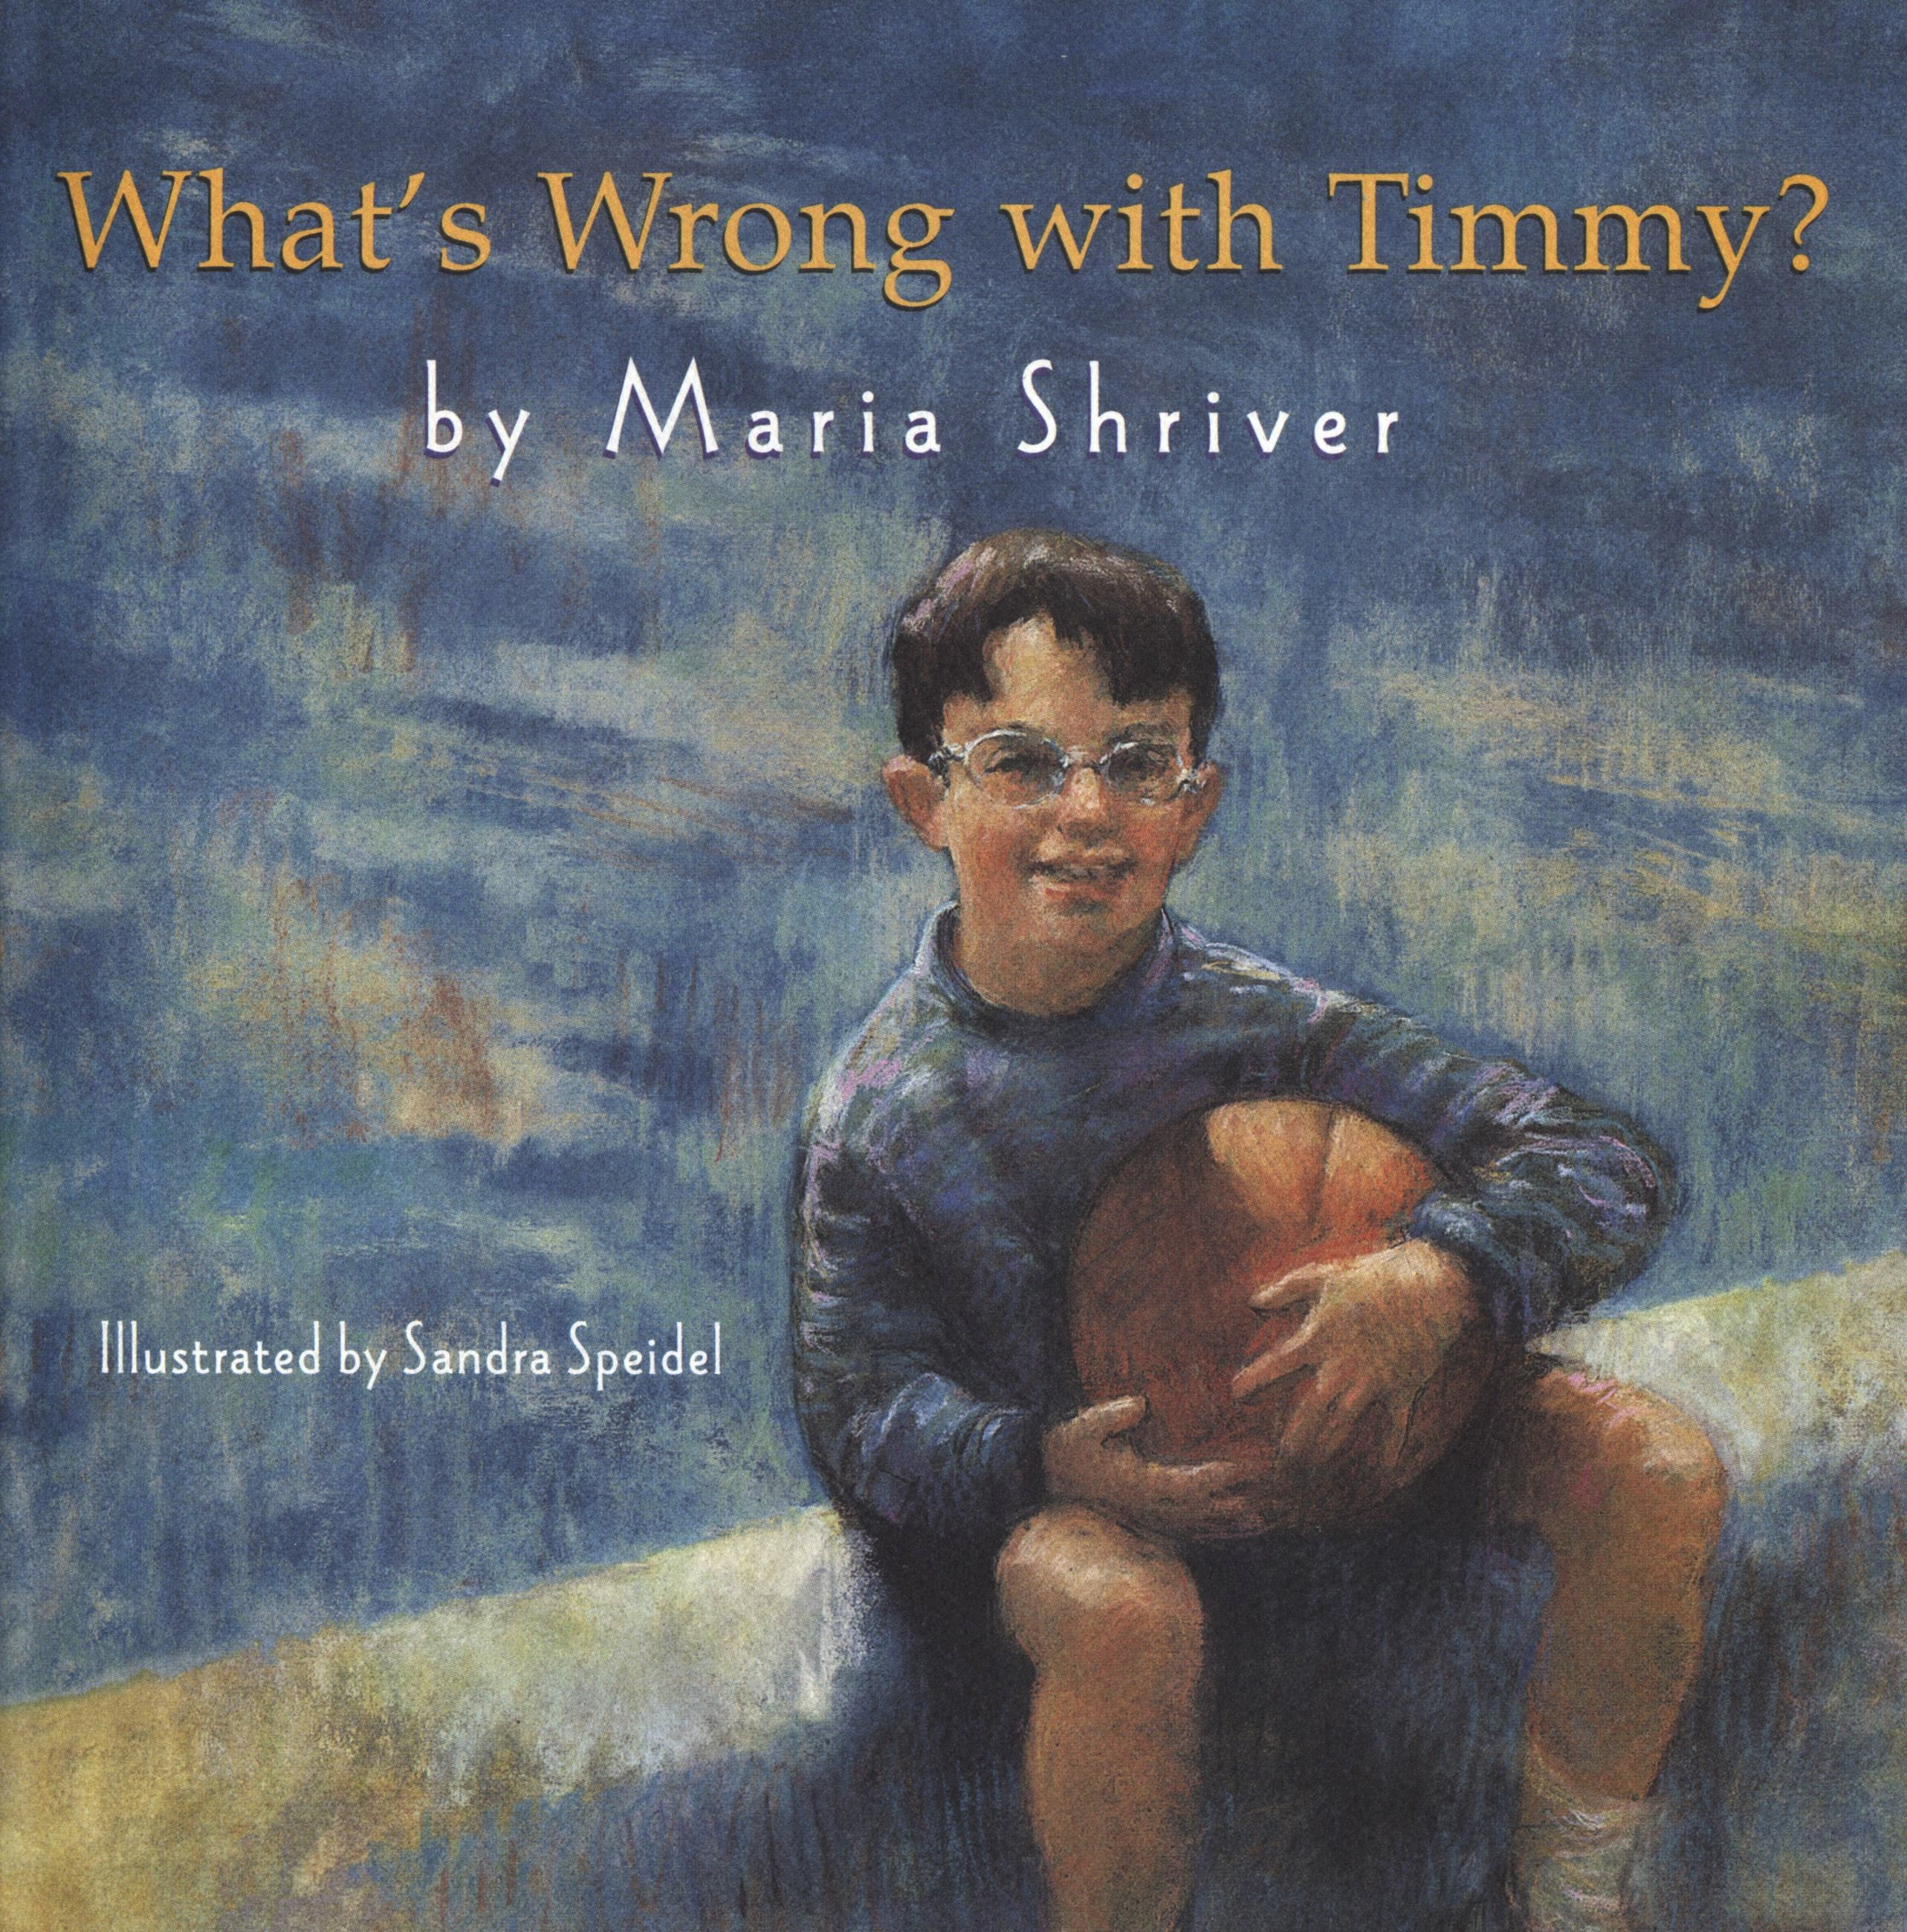 What's Wrong with Timmy?